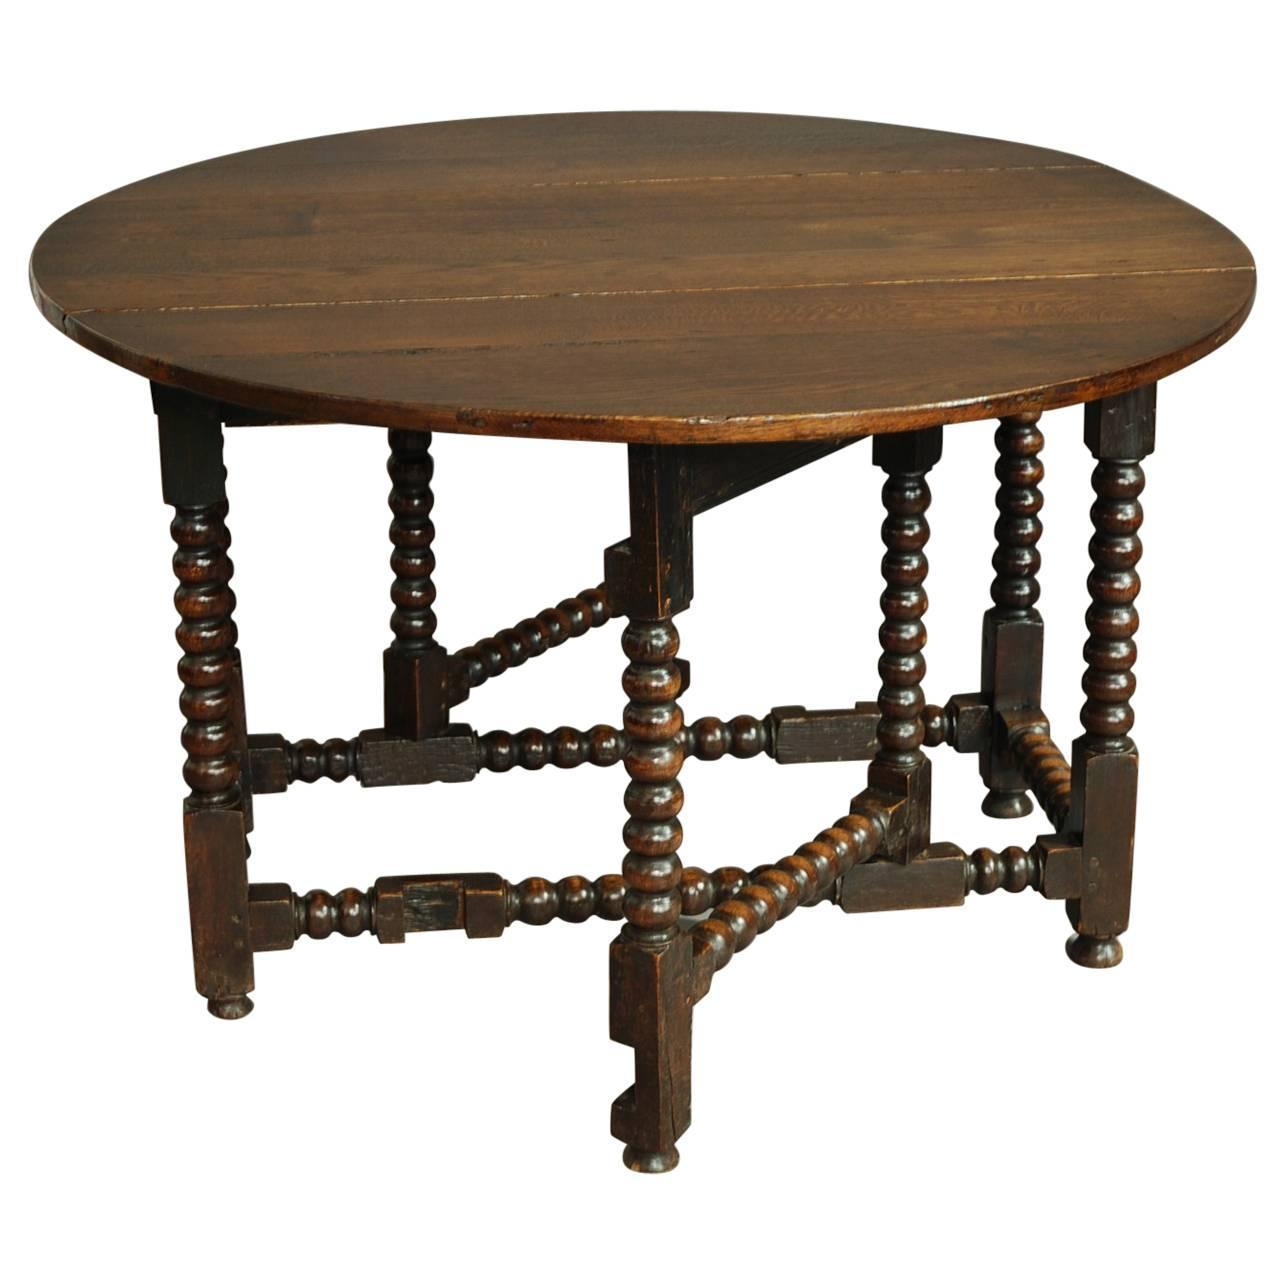 Large th century oak gateleg table with bobbin turned